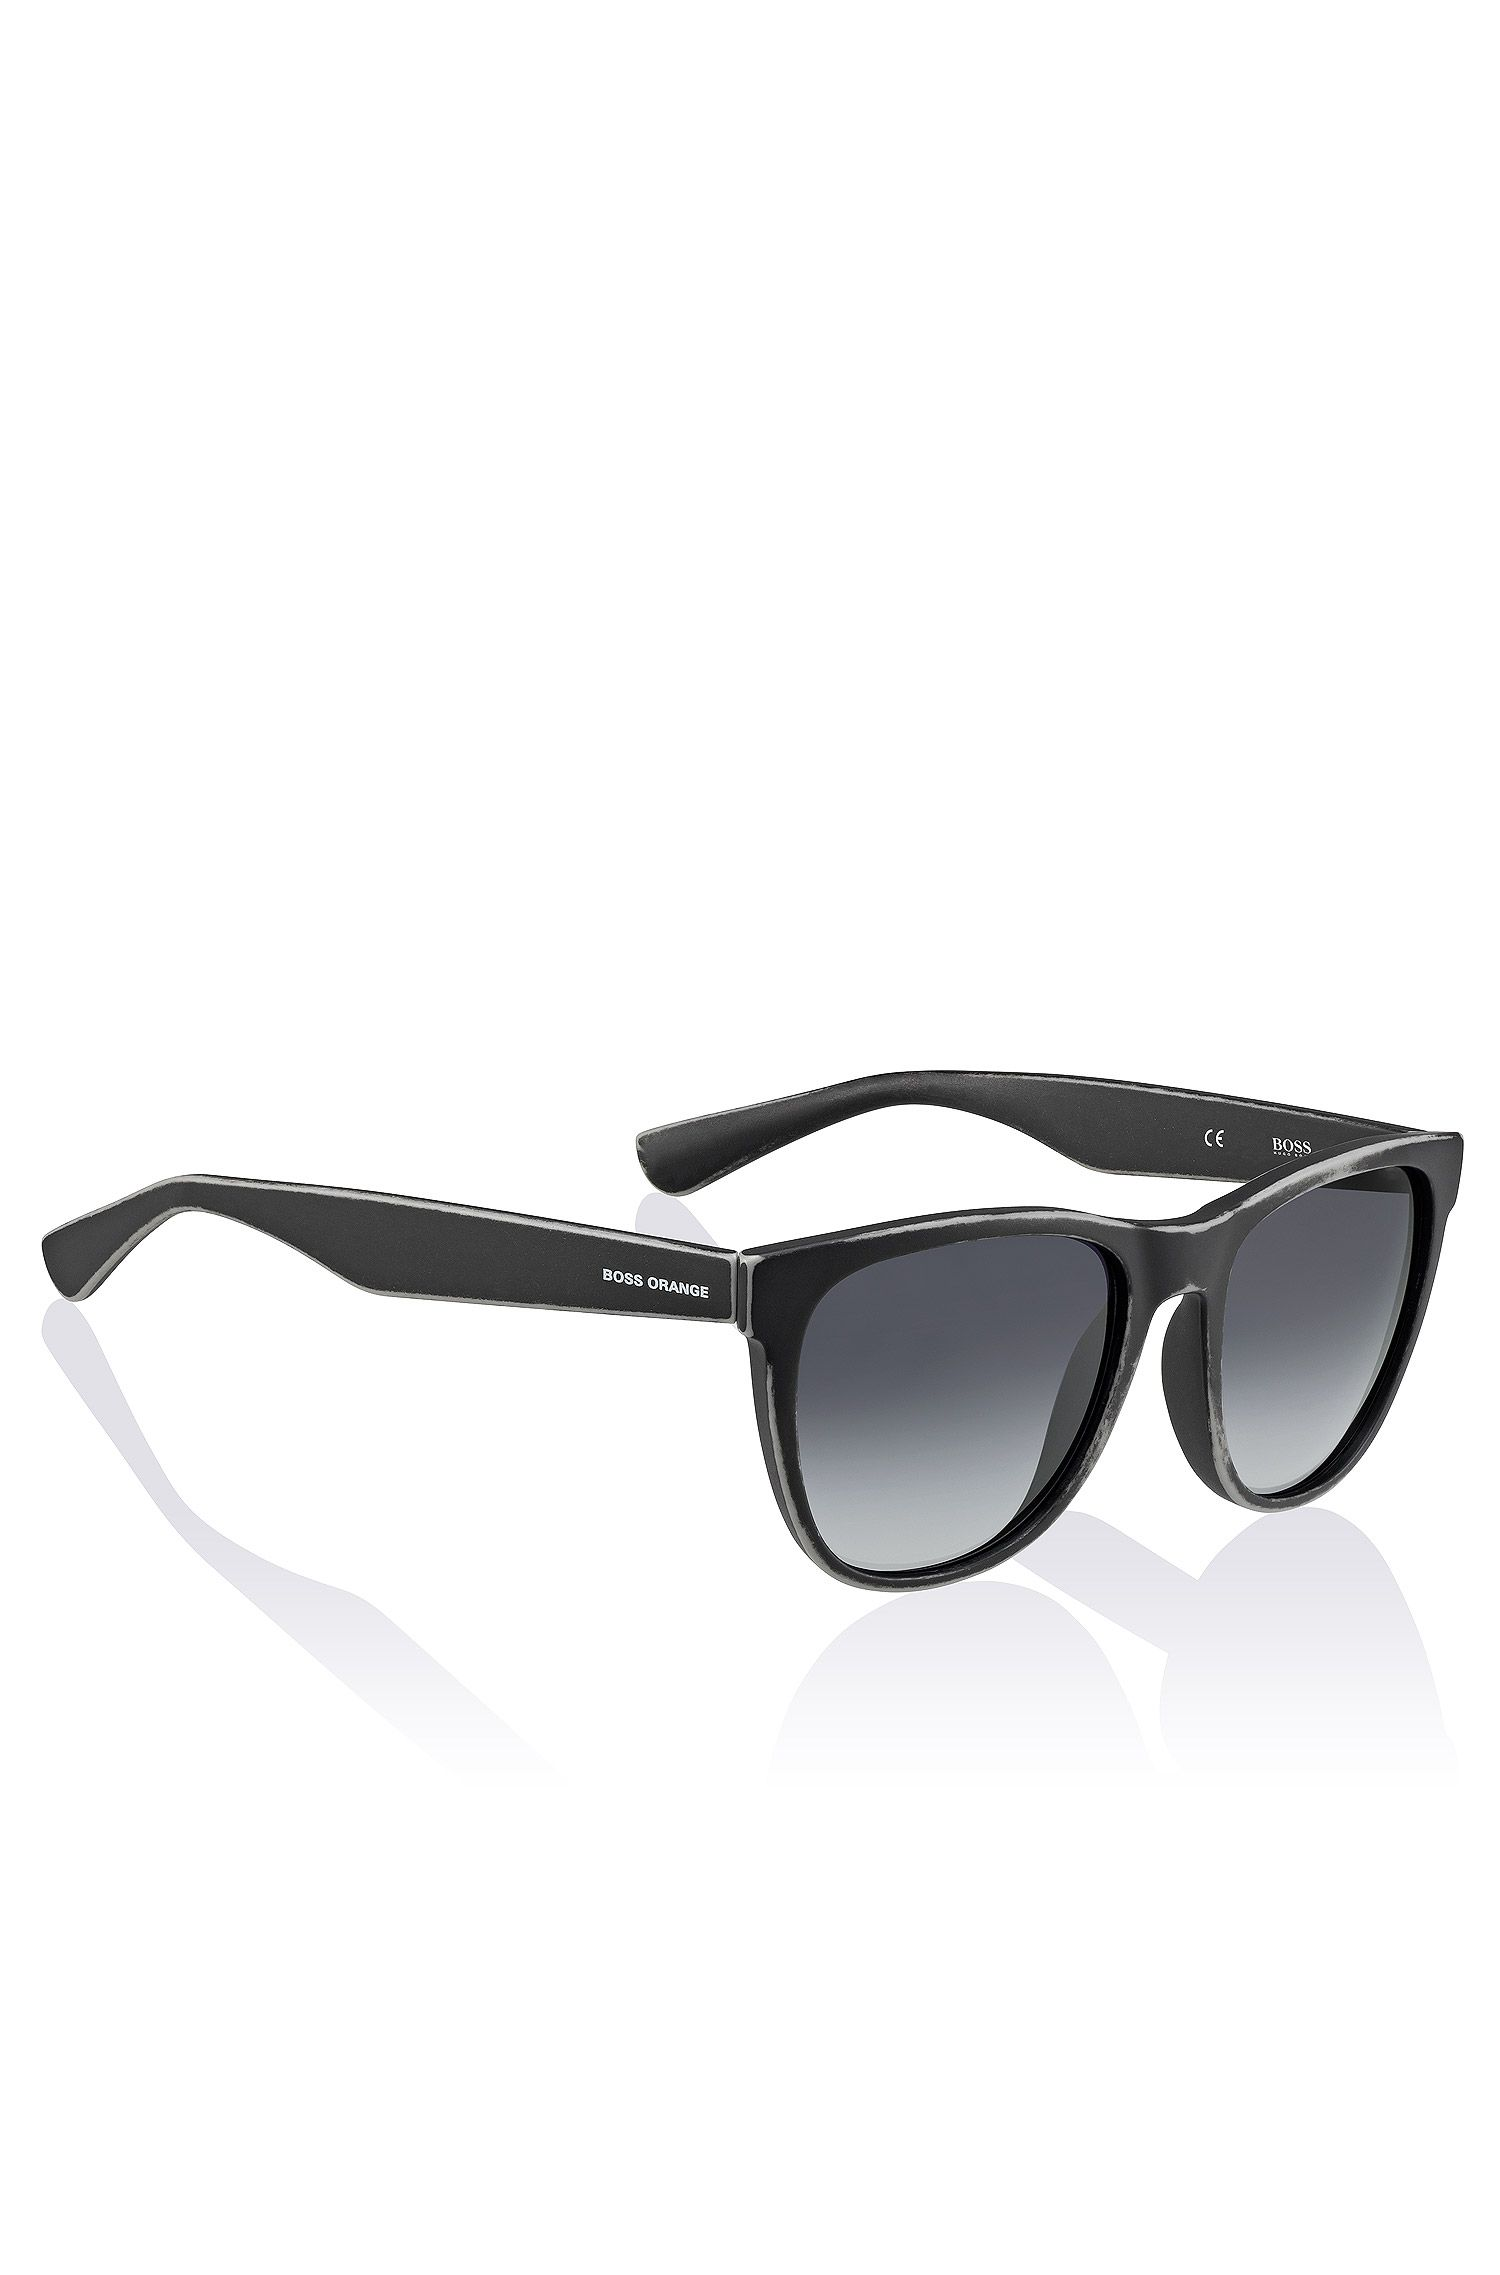 Wayfarer sunglasses 'BO 0198' in acetate